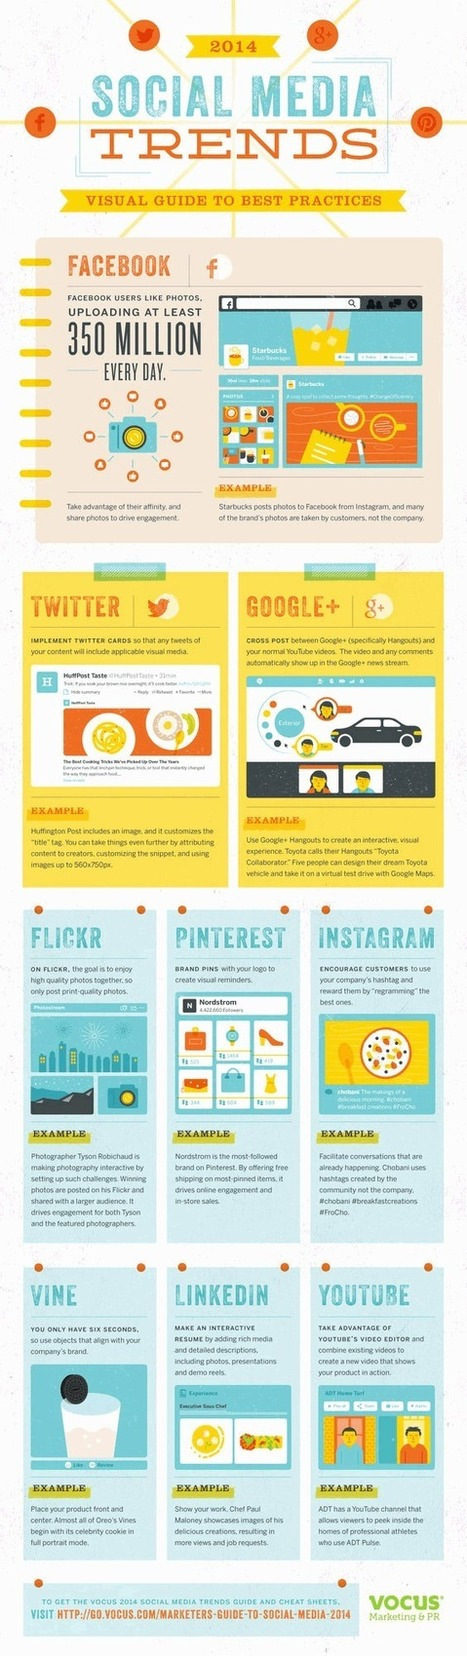 Social Media Marketing Tips 2014: A visual guide to best practices on Facebook, Twitter, Google+ and more | The Perfect Storm Team | Scoop.it